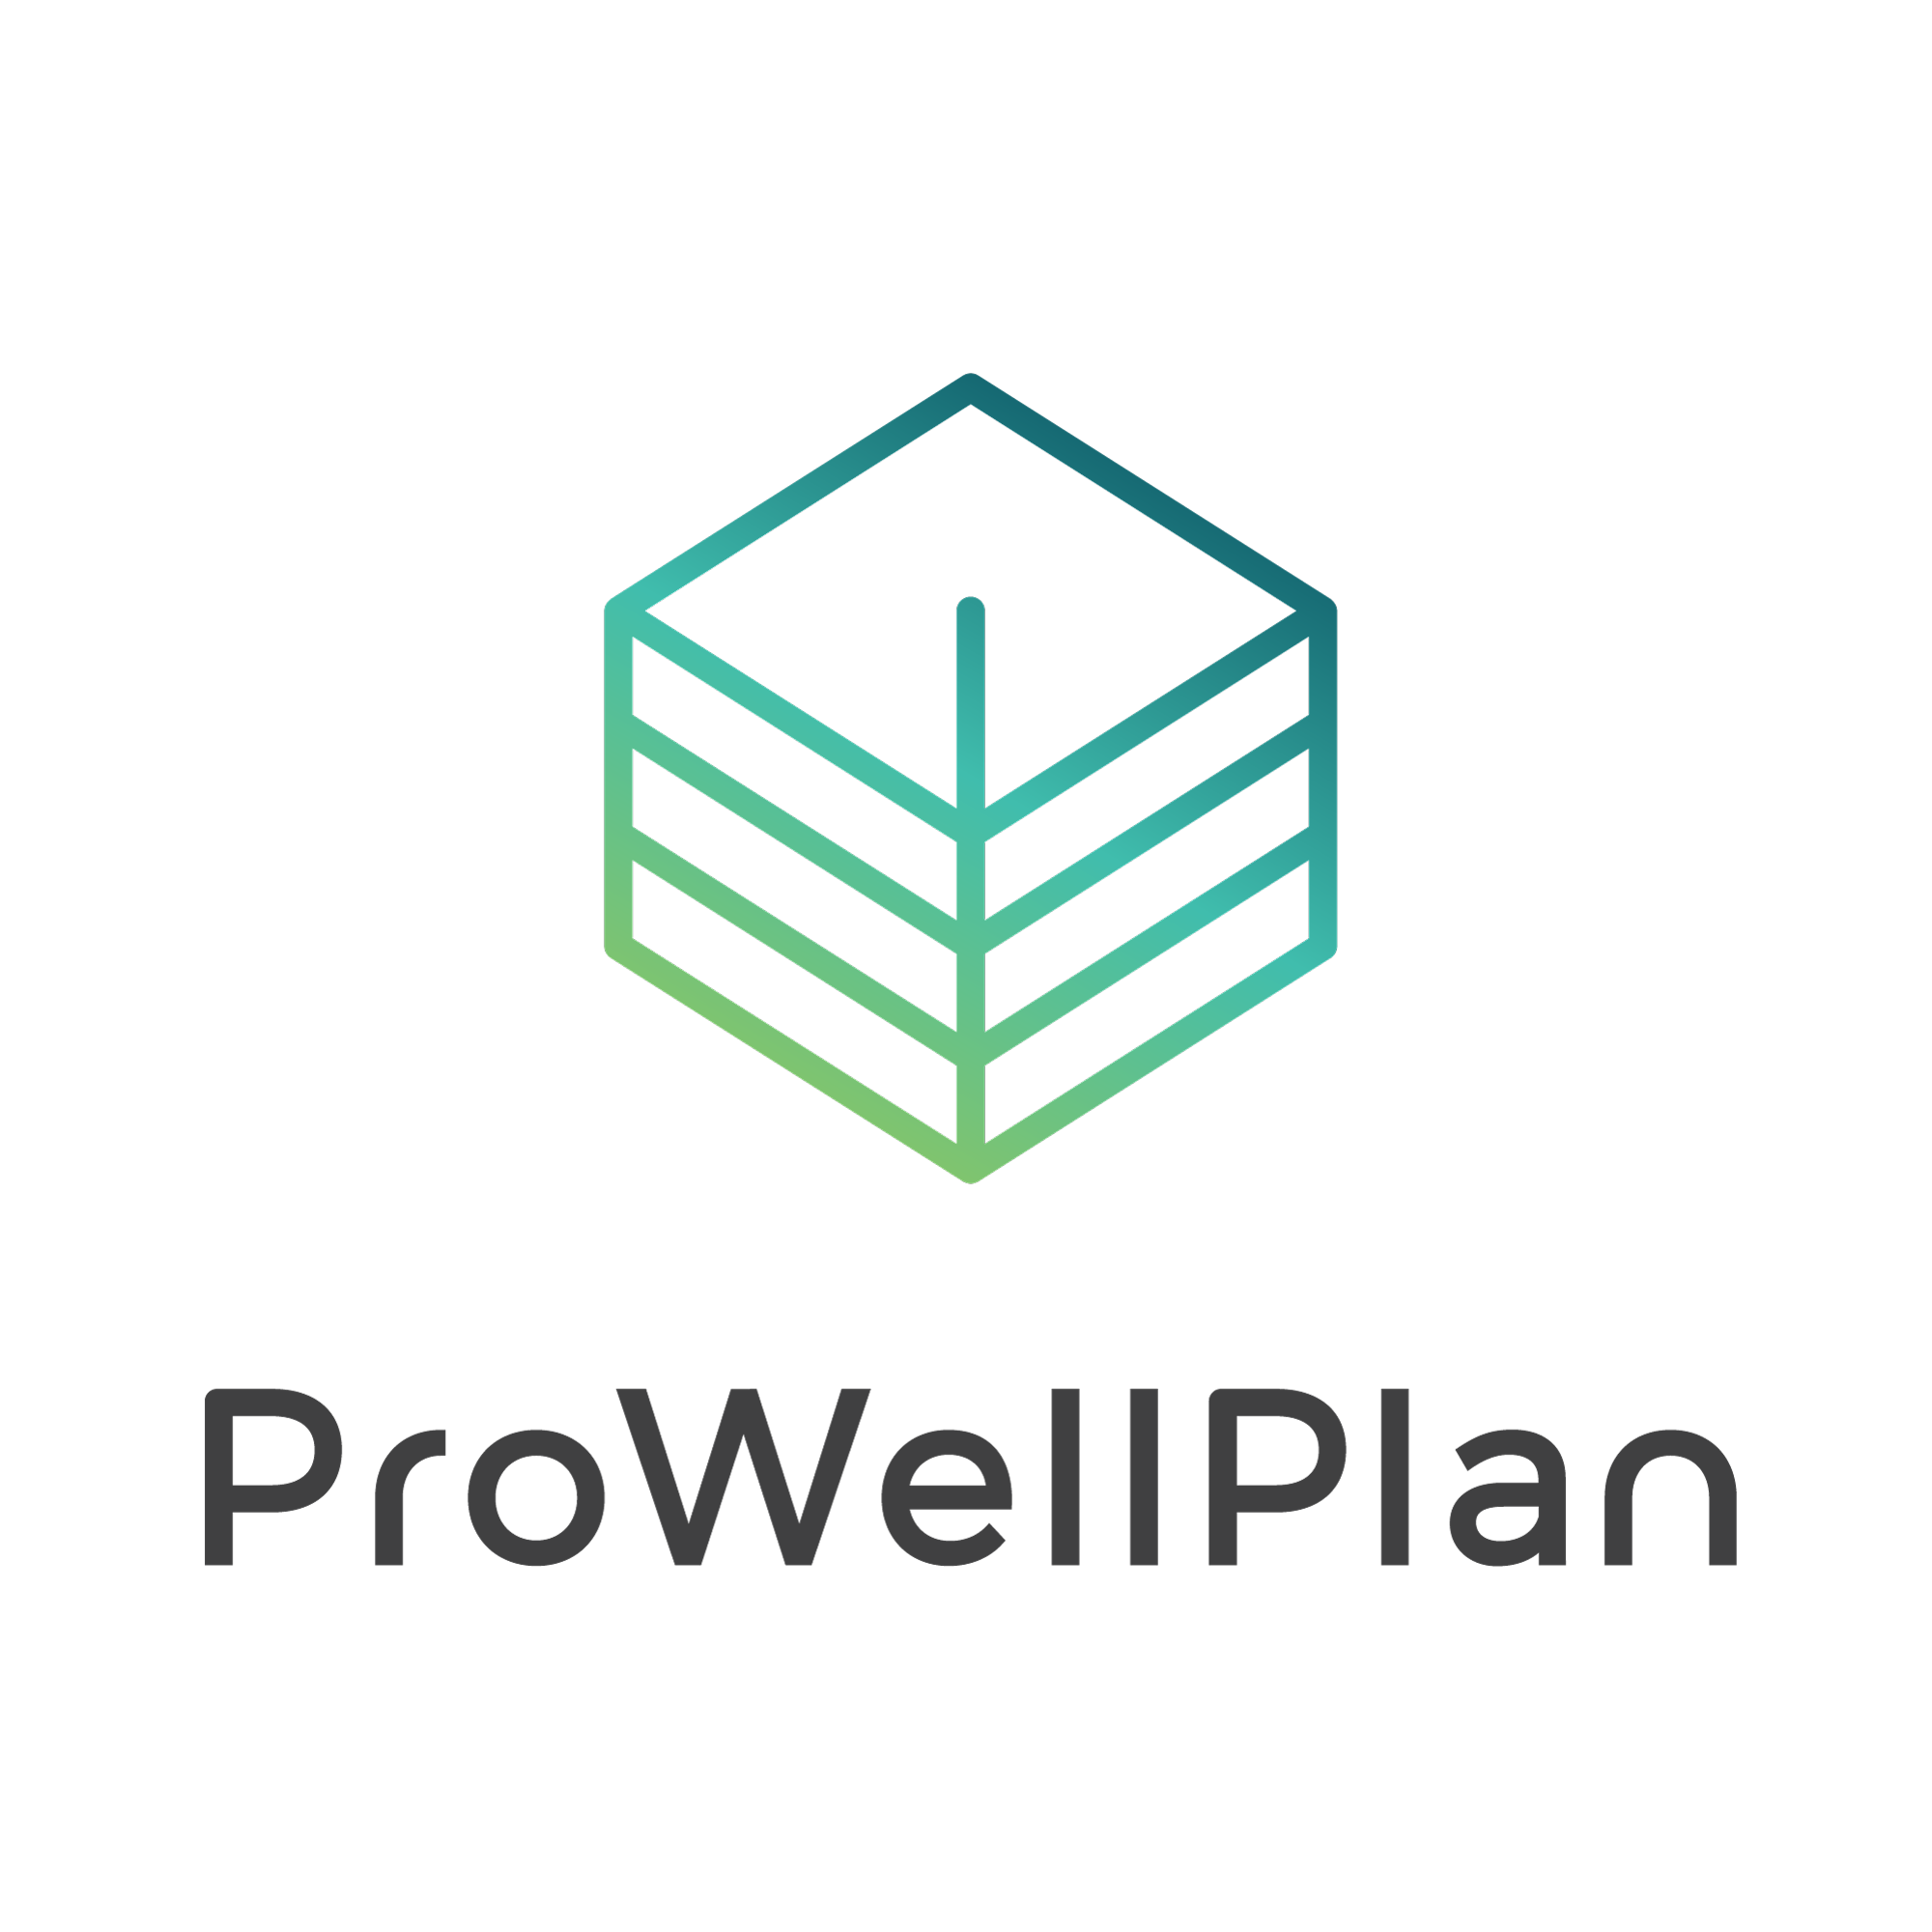 ProWellPlan_stor_positiv_rgb.png